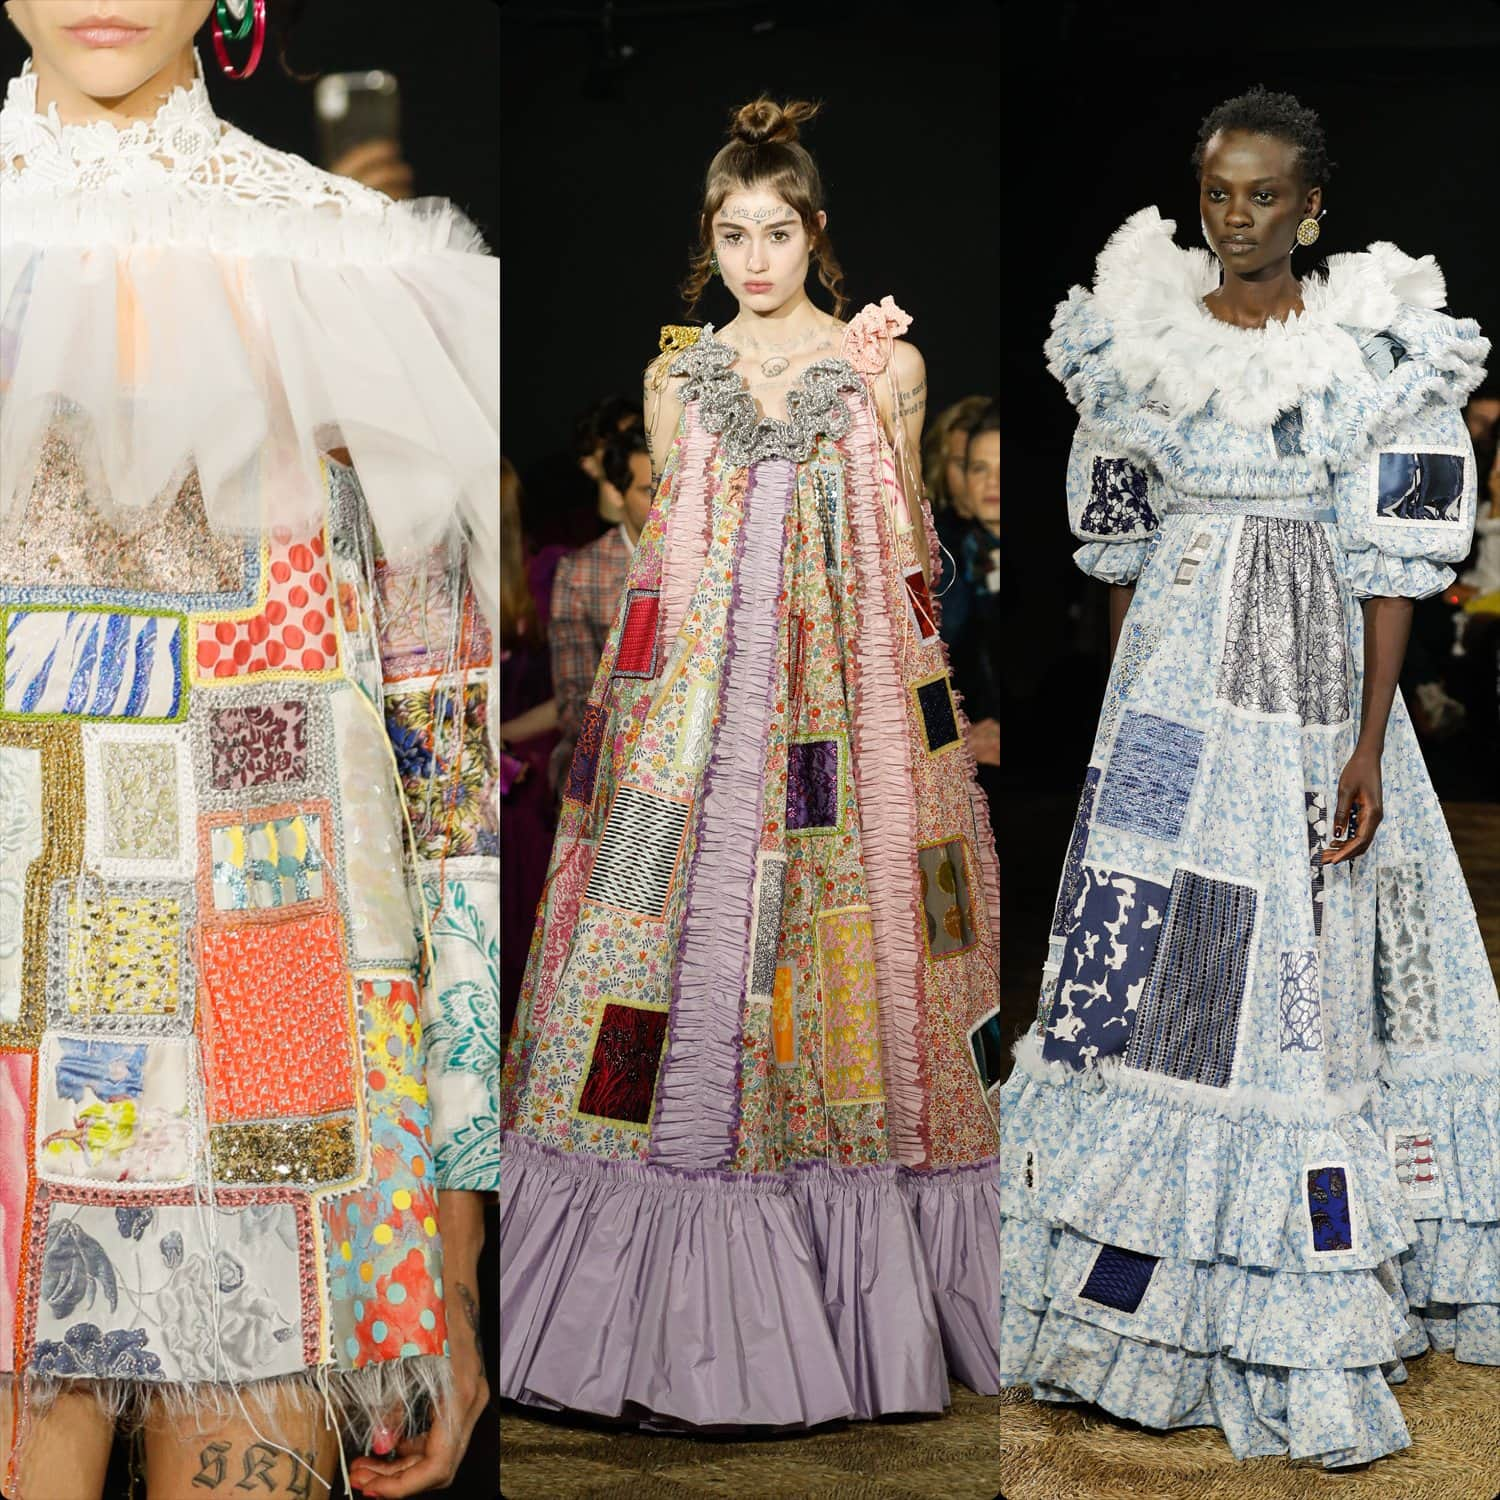 Viktor & Rolf Haute Couture Spring Summer 2020 Paris Fashion Week. RUNWAY MAGAZINE ® Collections. RUNWAY NOW / RUNWAY NEW